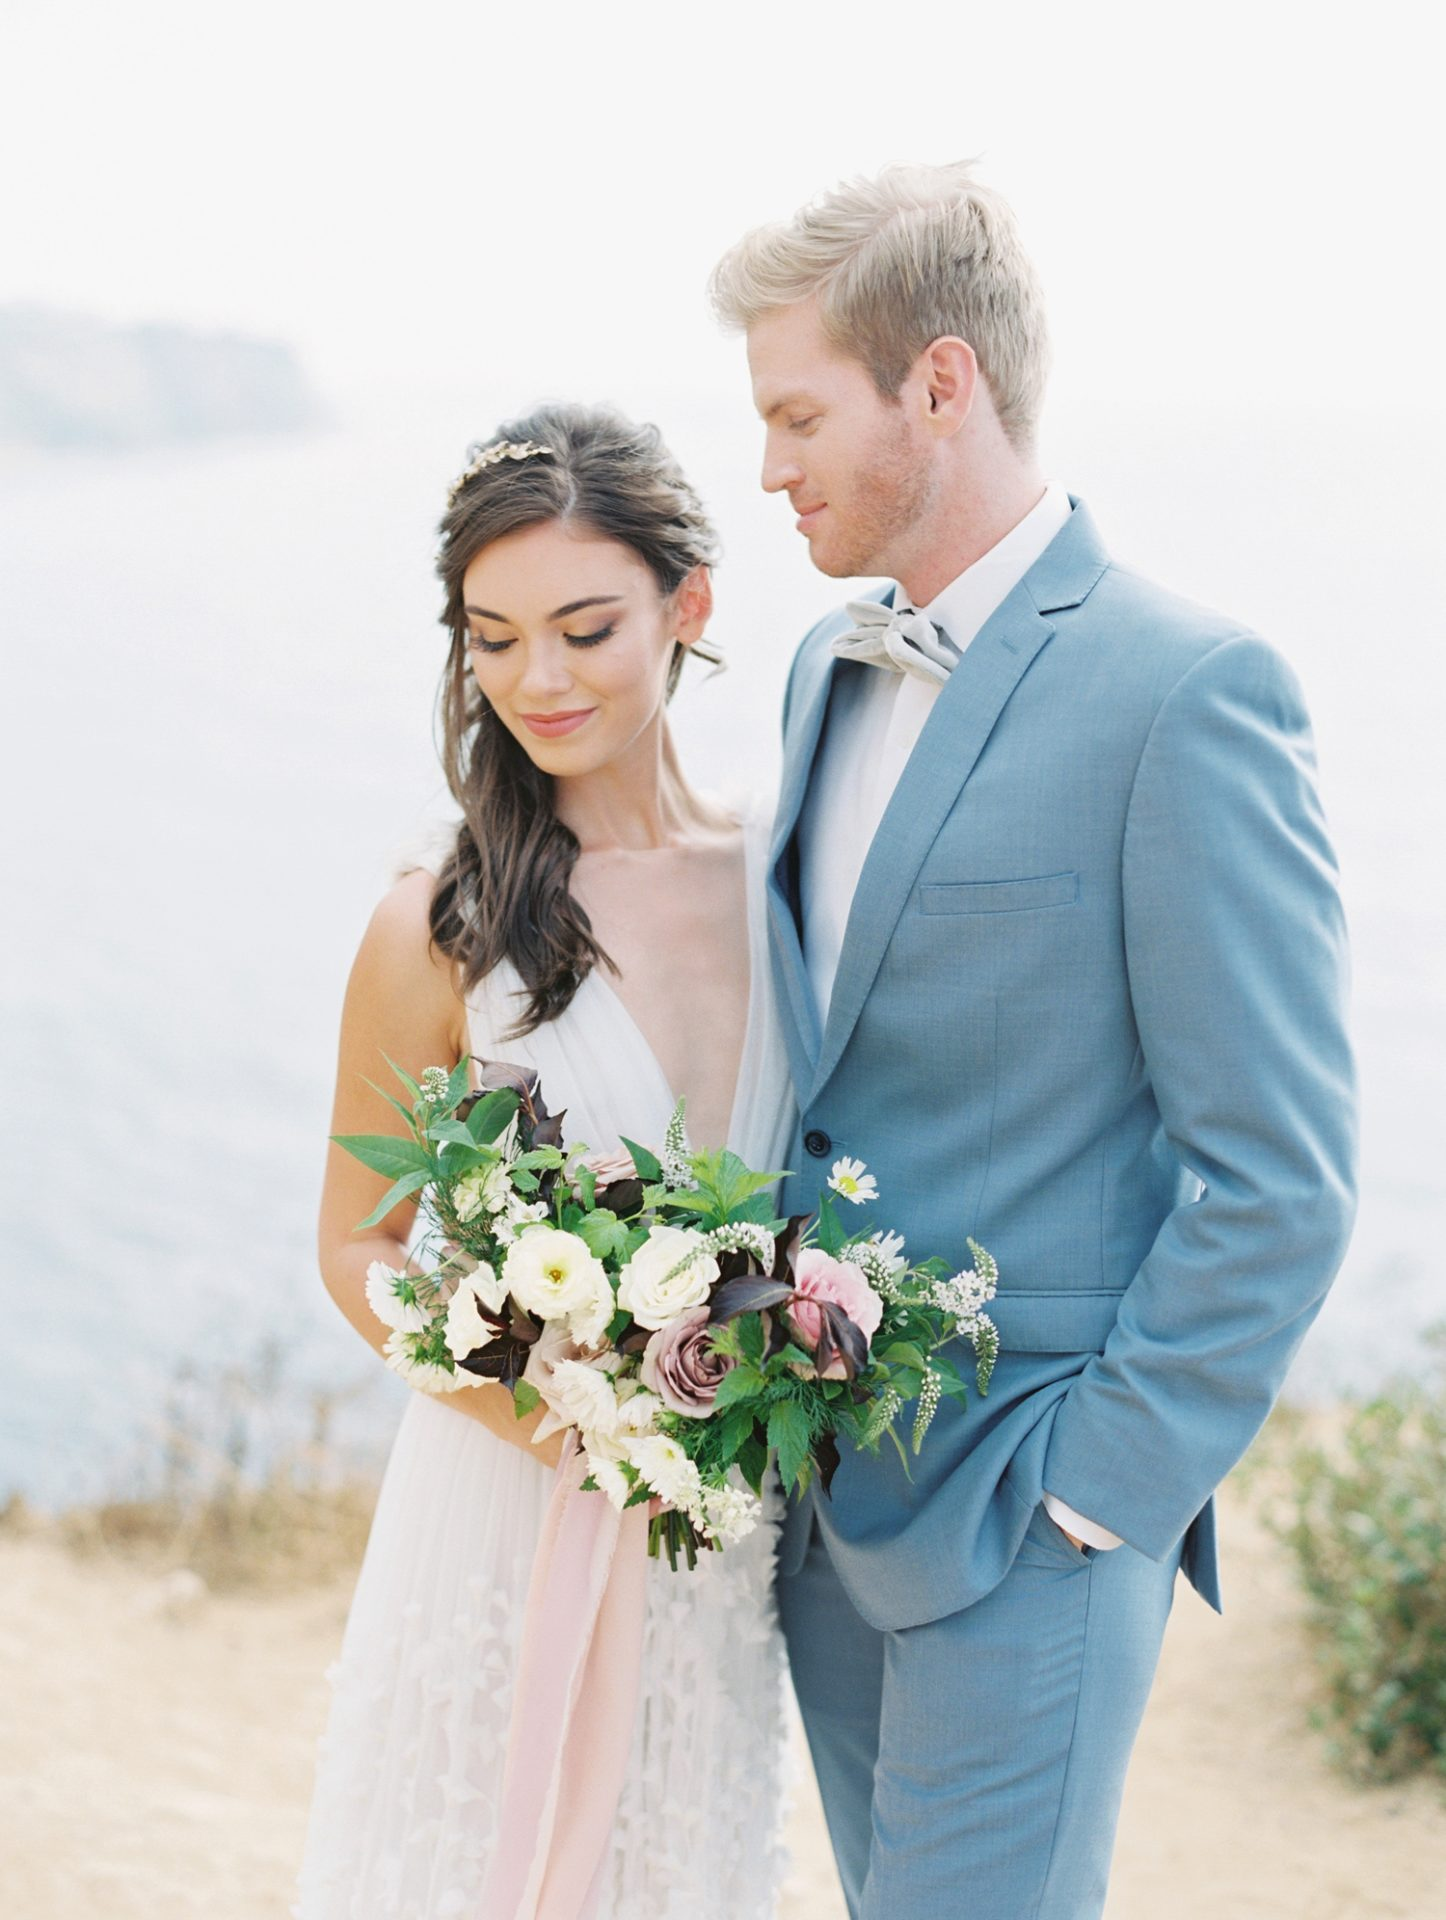 Classy Coastal Elopement In Greece Couple Portrait